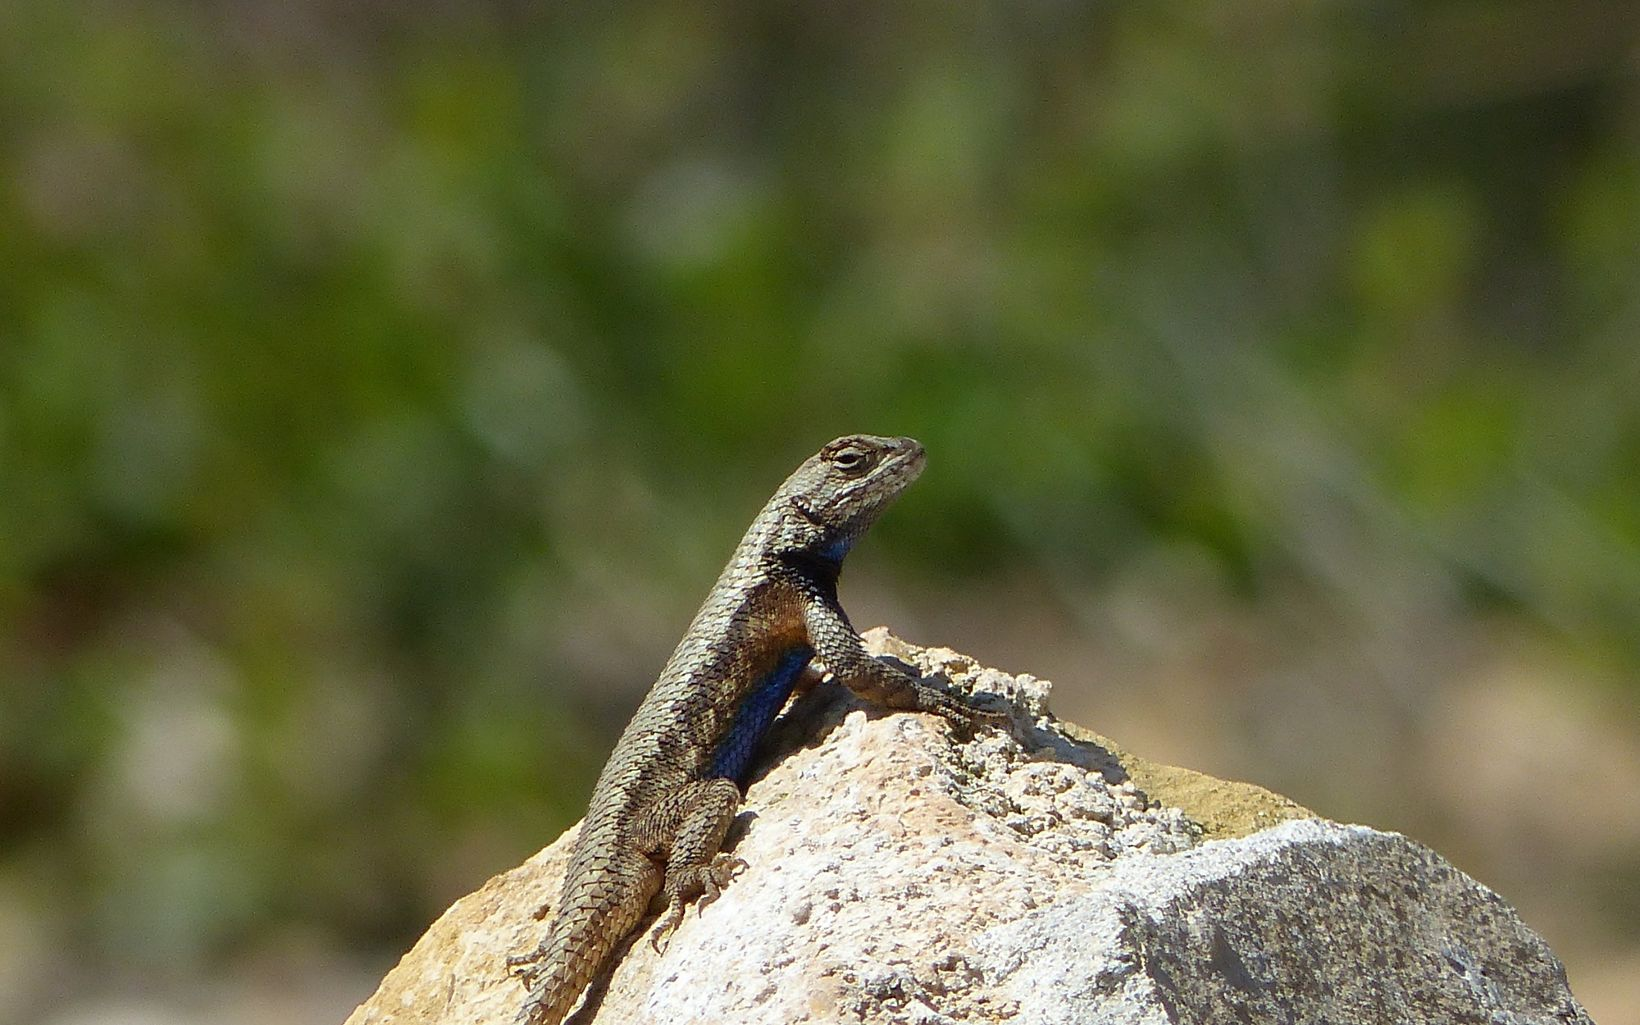 A lizard perched on a rock.